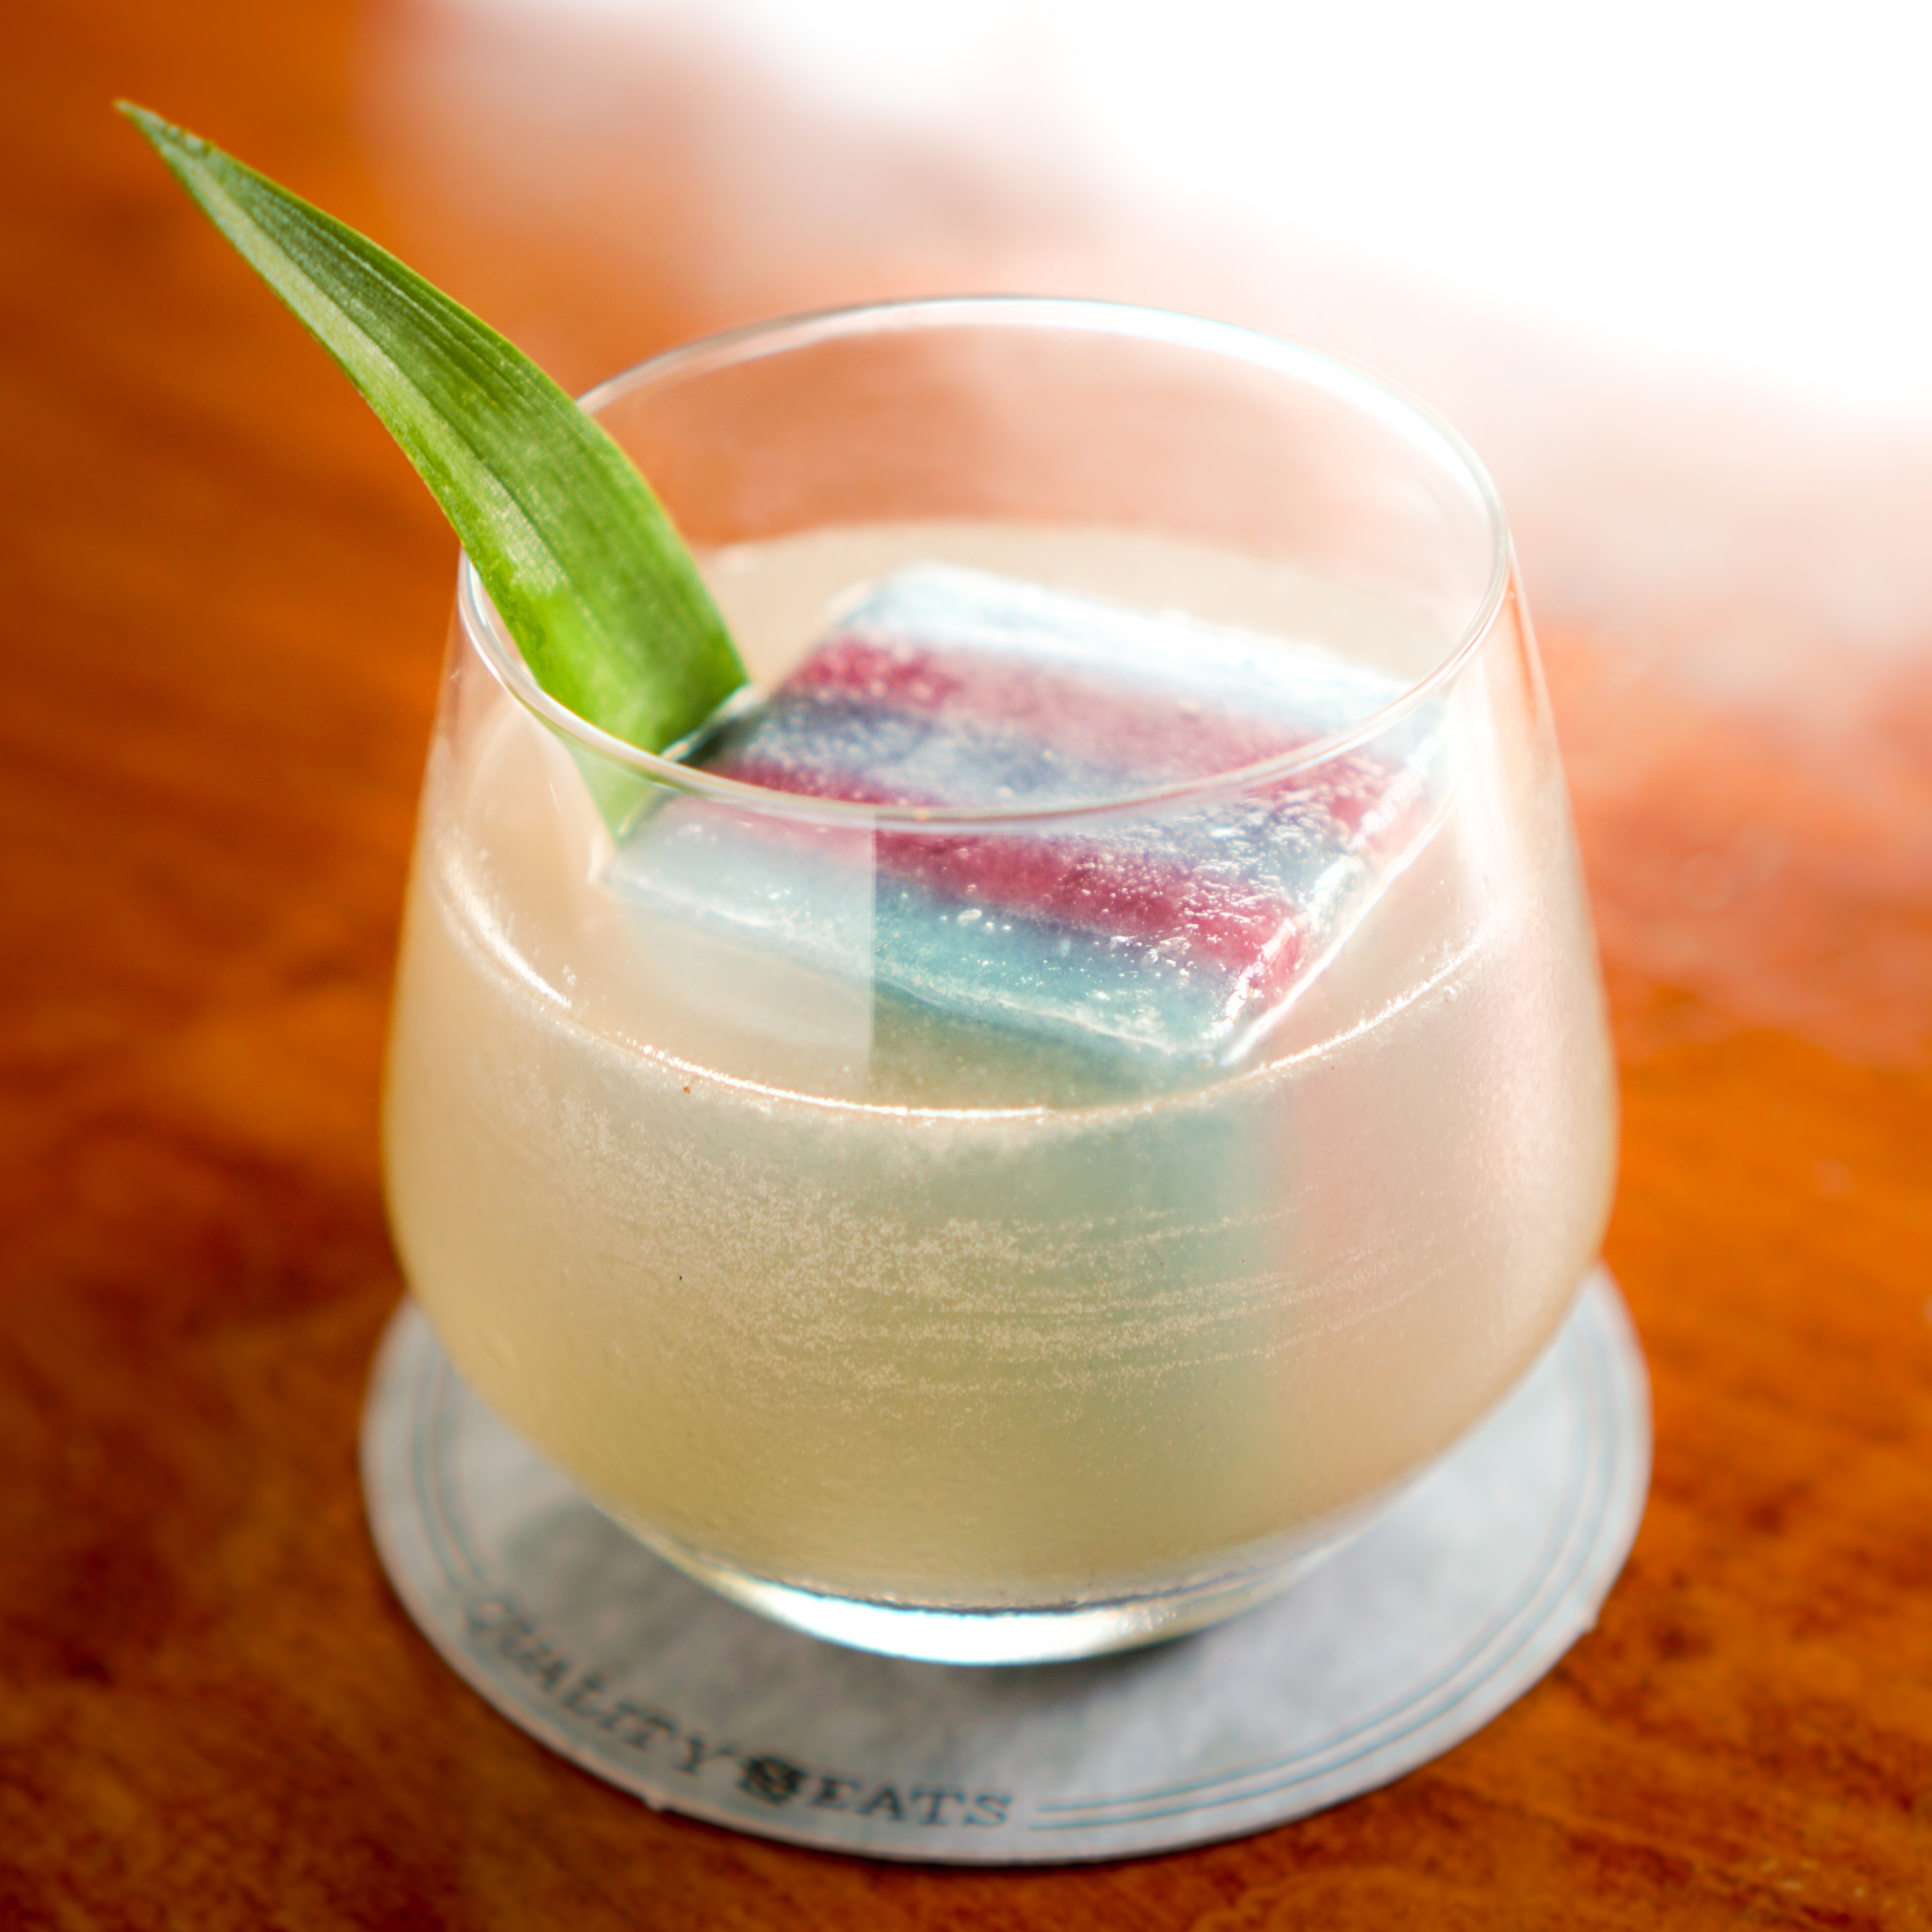 You've Never Seen a Cocktail With an Ice Cube Like This